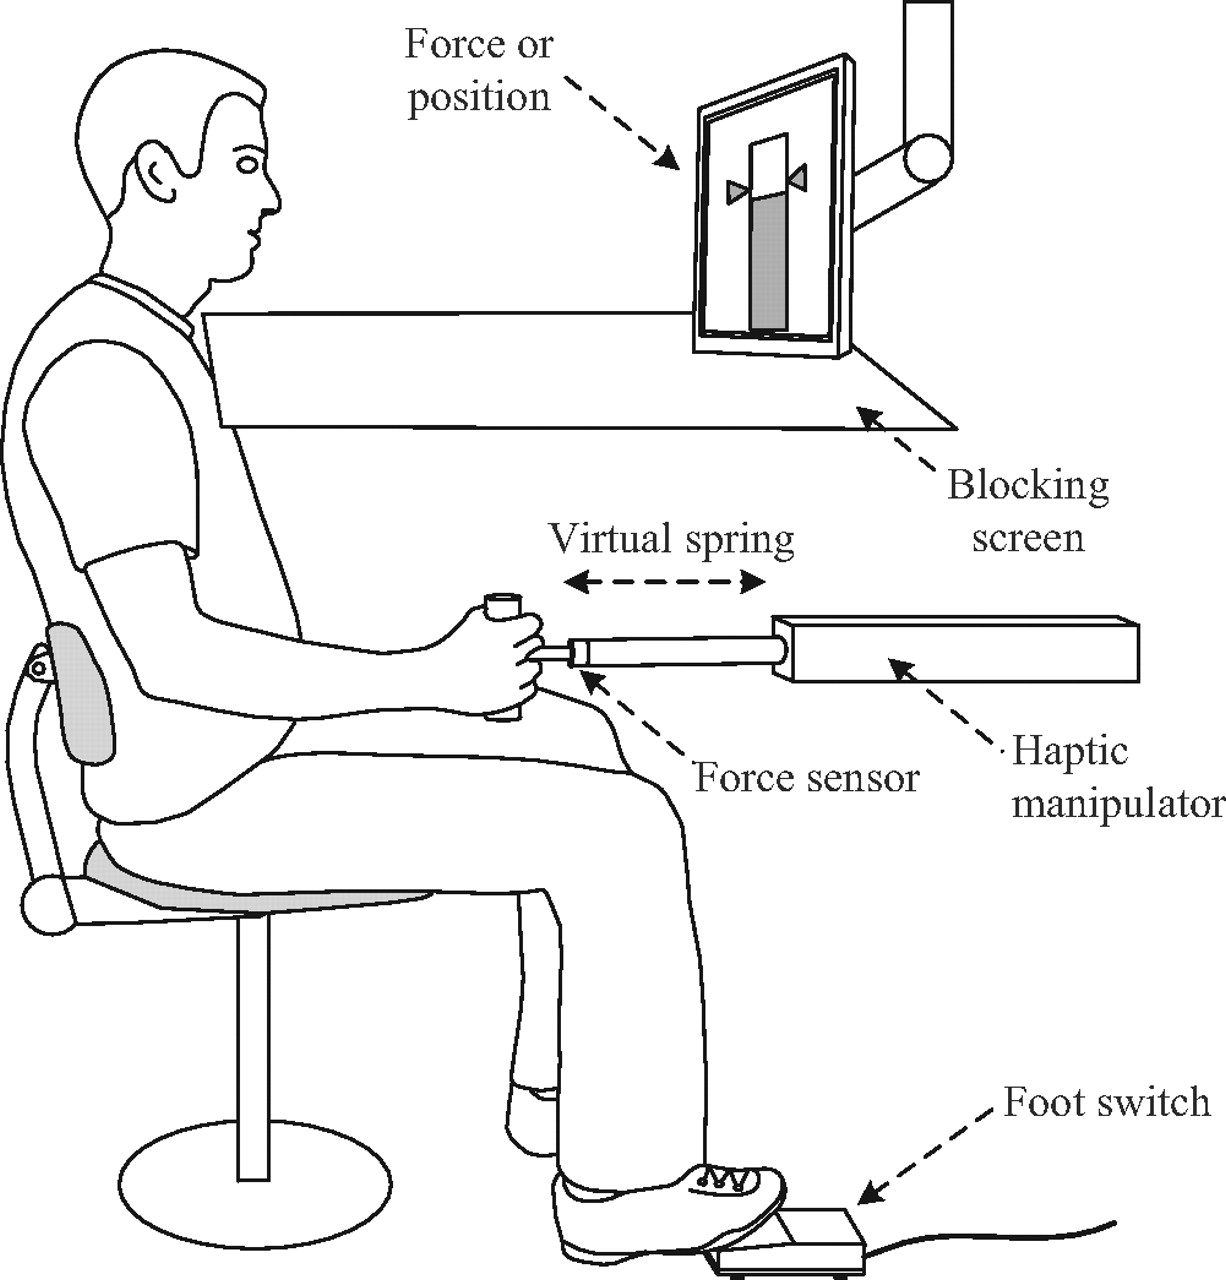 Sensory Weighting Of Force And Position Feedback In Human